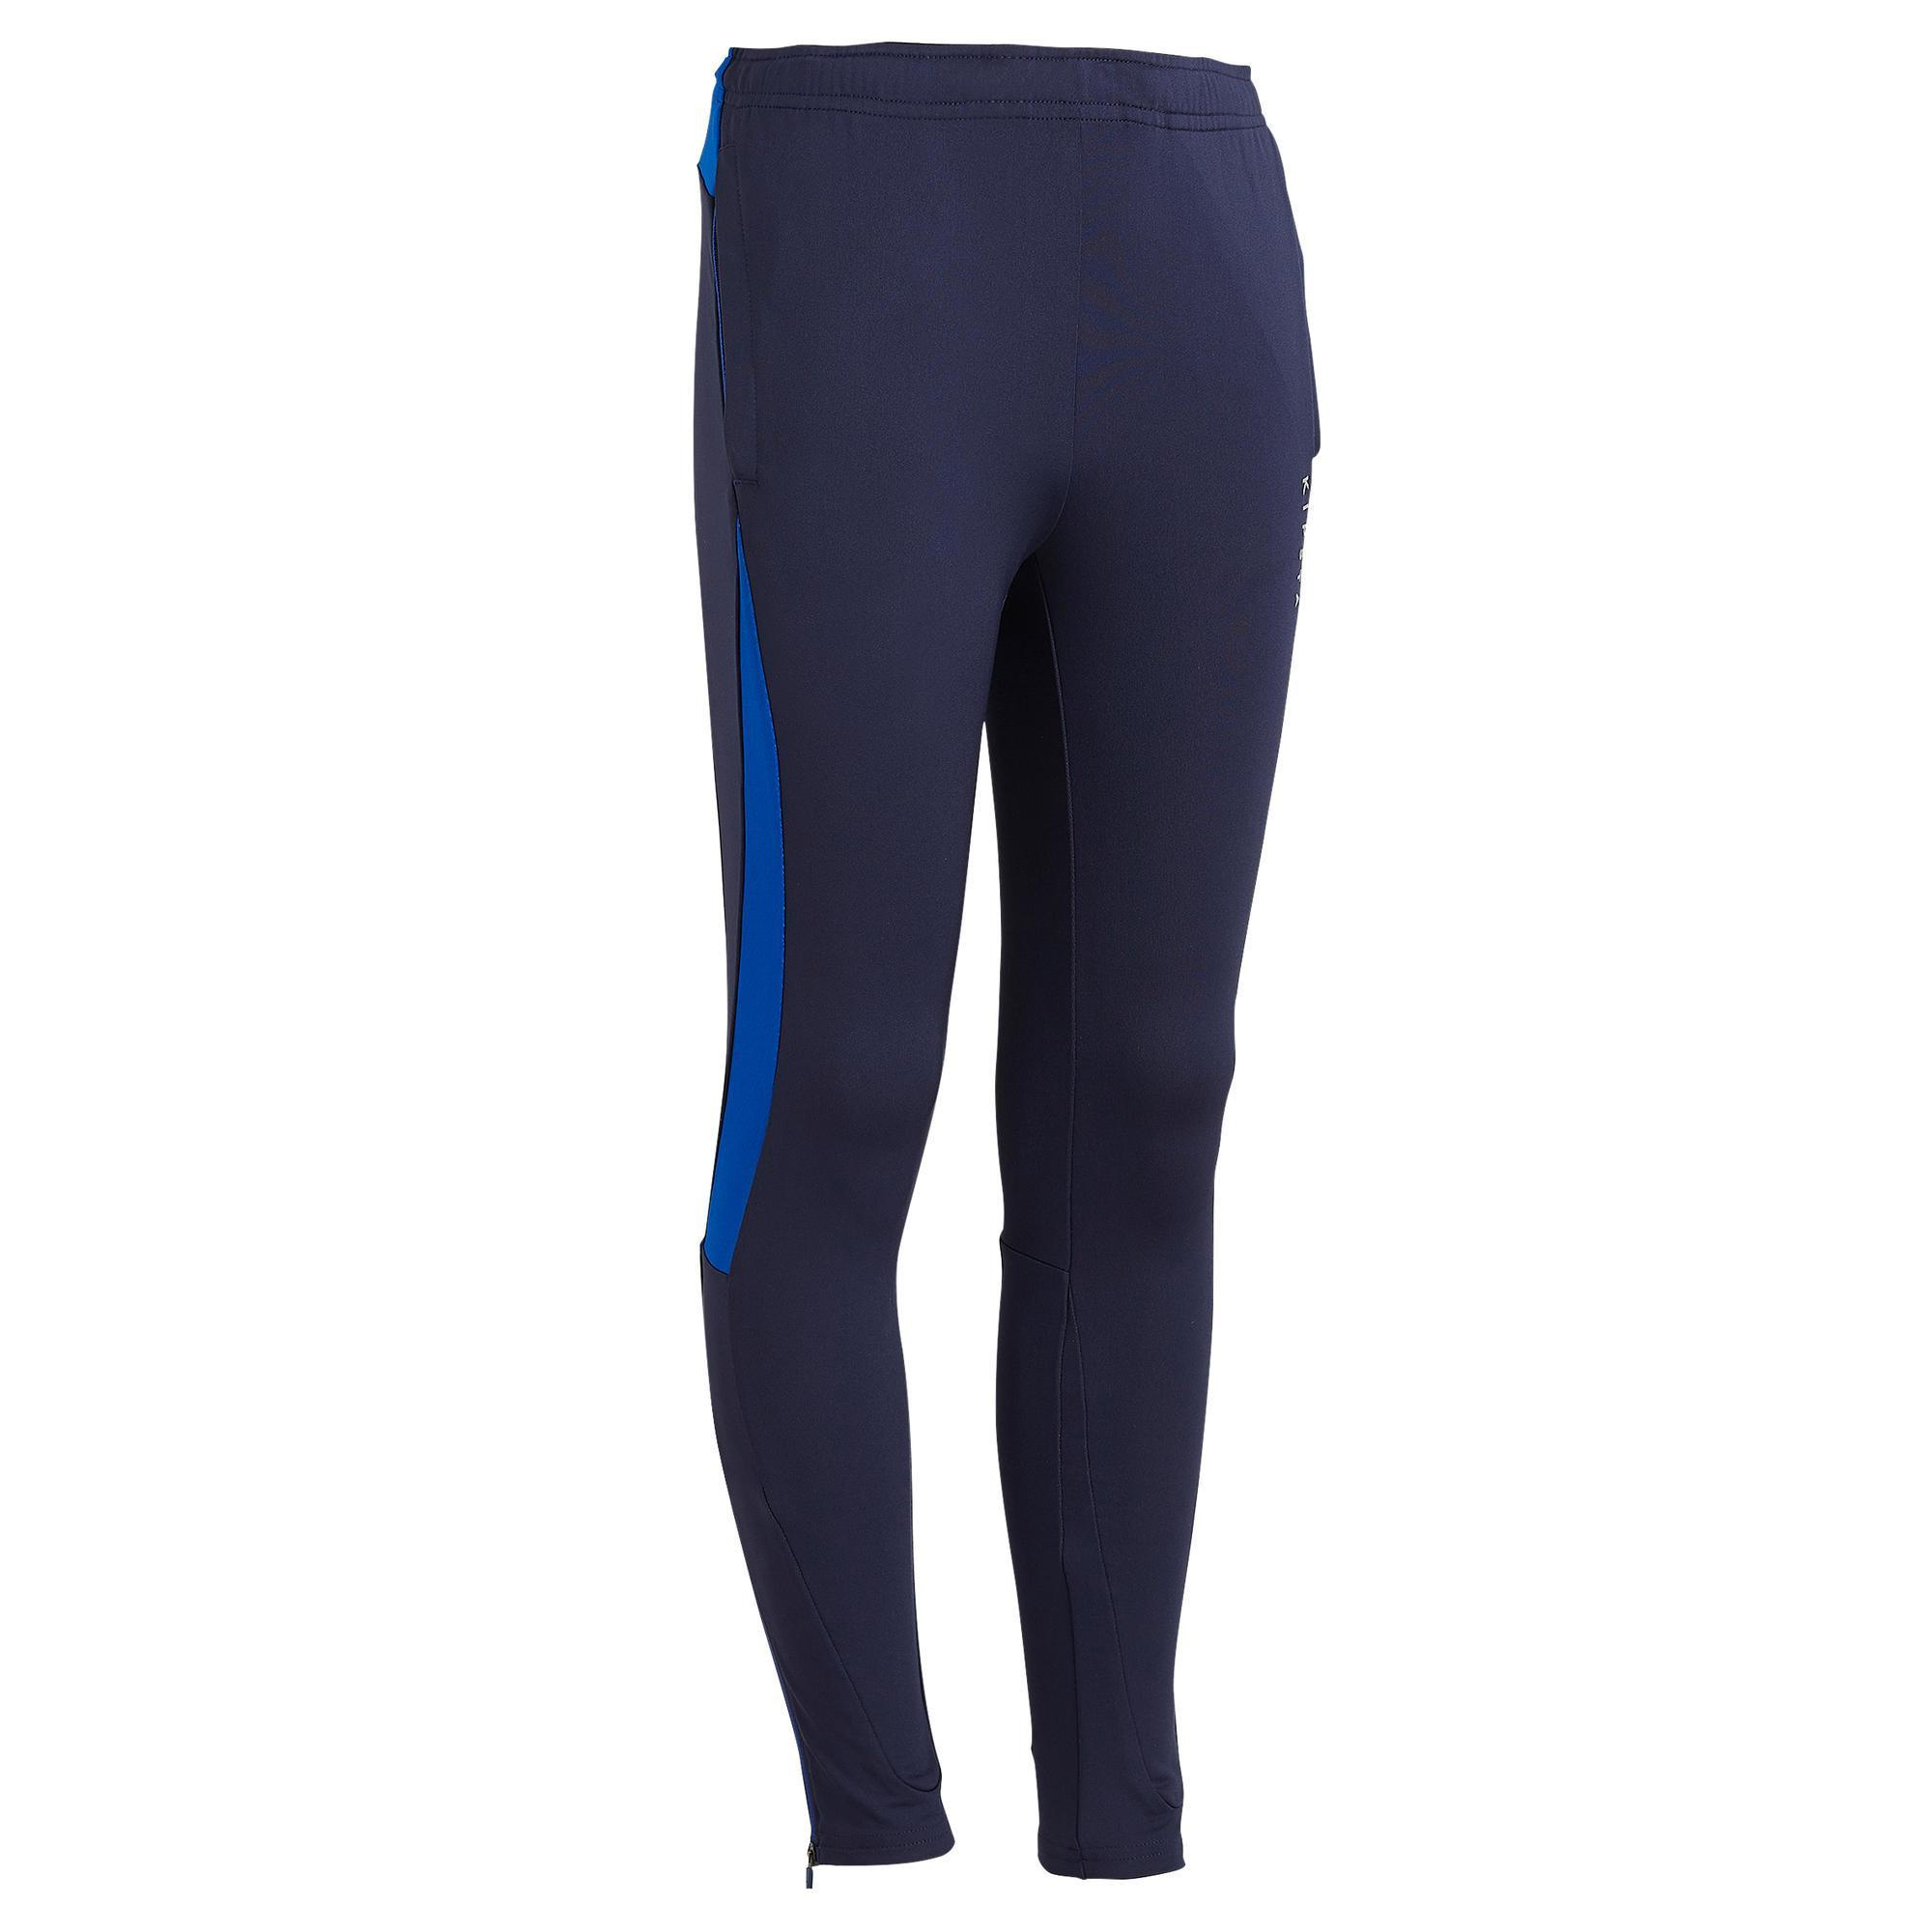 Pantalon de football dentrainement enfant tp 900 marine et bleu indigo kipsta